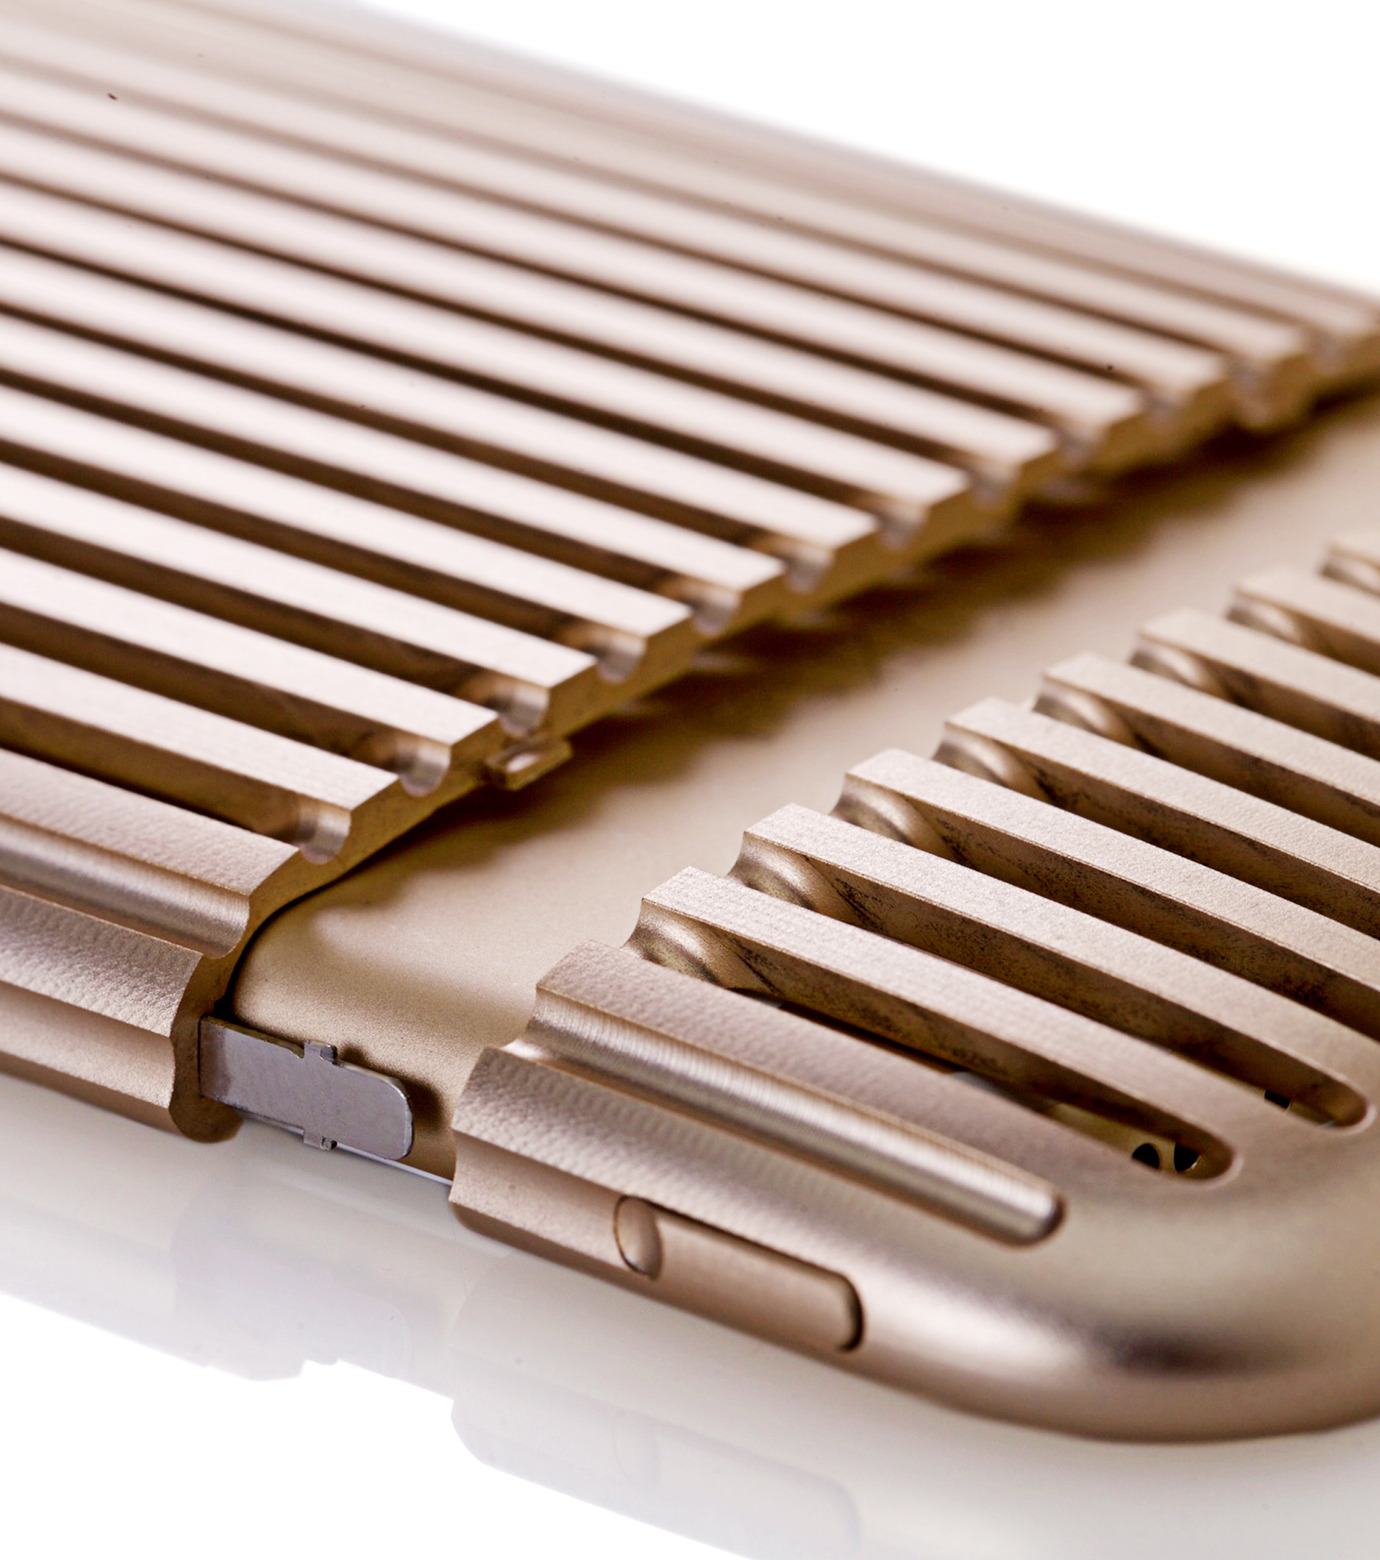 SQUAIR(スクエア)のThe Slit for iPhone6-GOLD(ケースiphone6/6s/case iphone6/6s)-SQSLT620-GLD-2 拡大詳細画像5